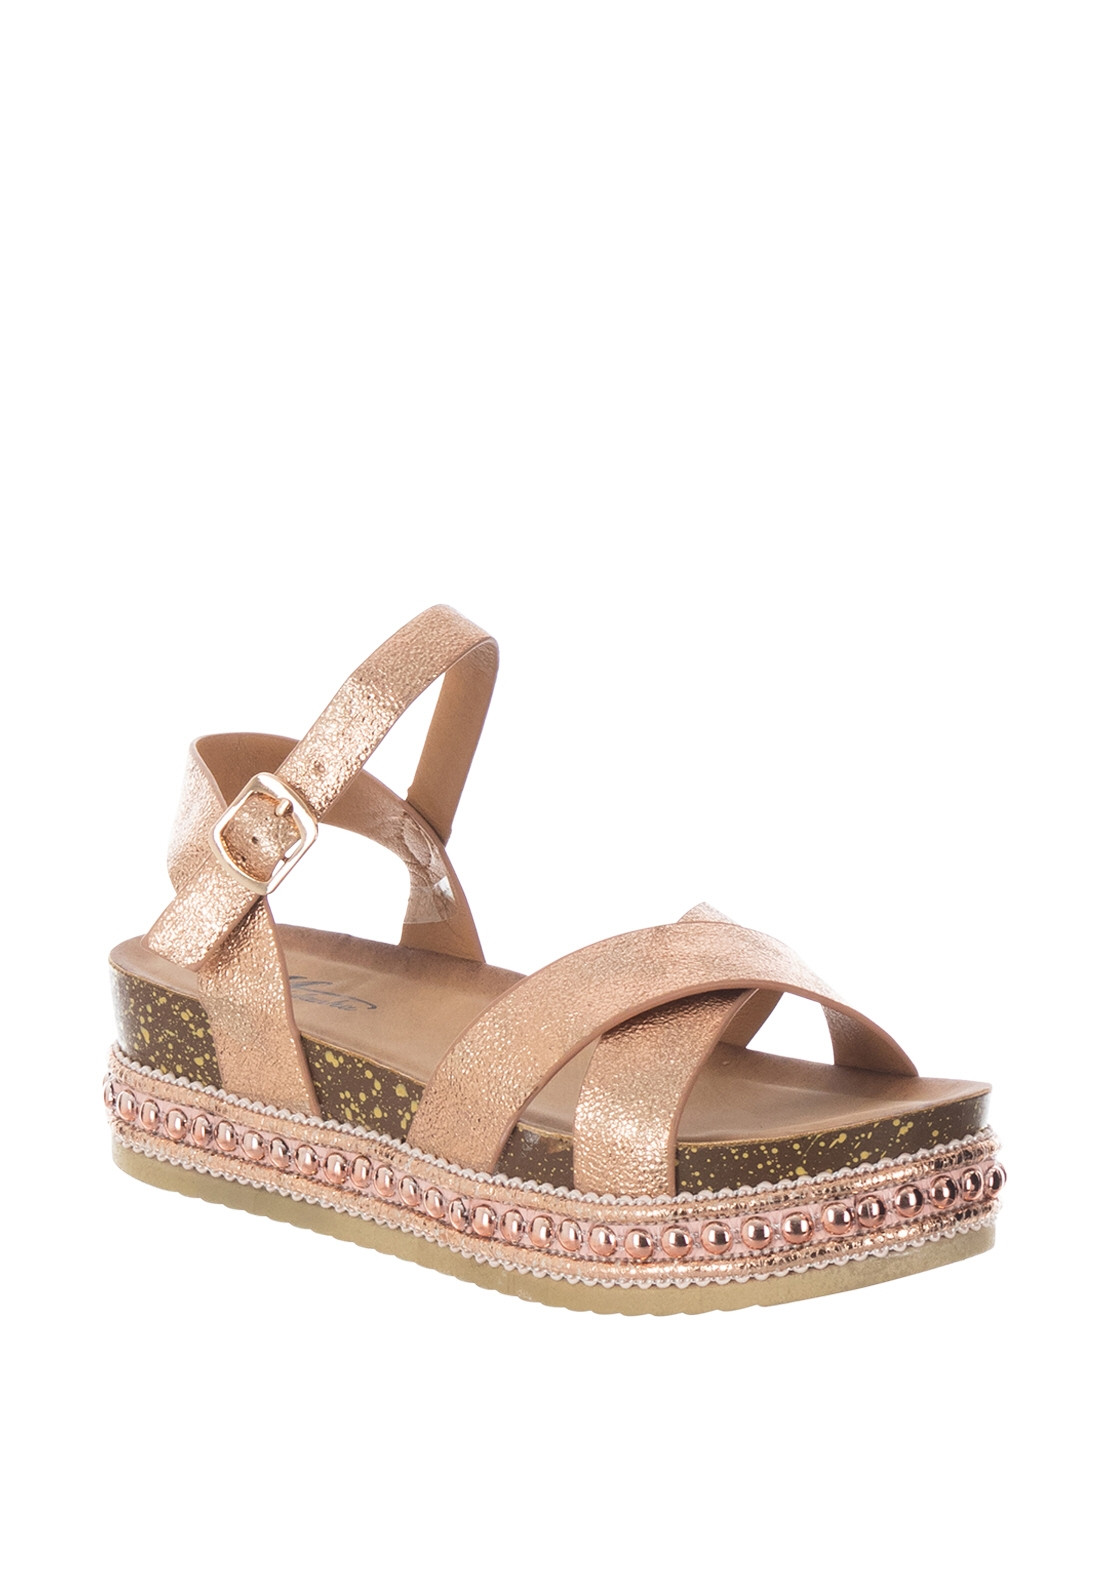 65d824d22c Zen Metallic Stud Trim Platform Sandals, Rose Gold. Be the first to review  this product